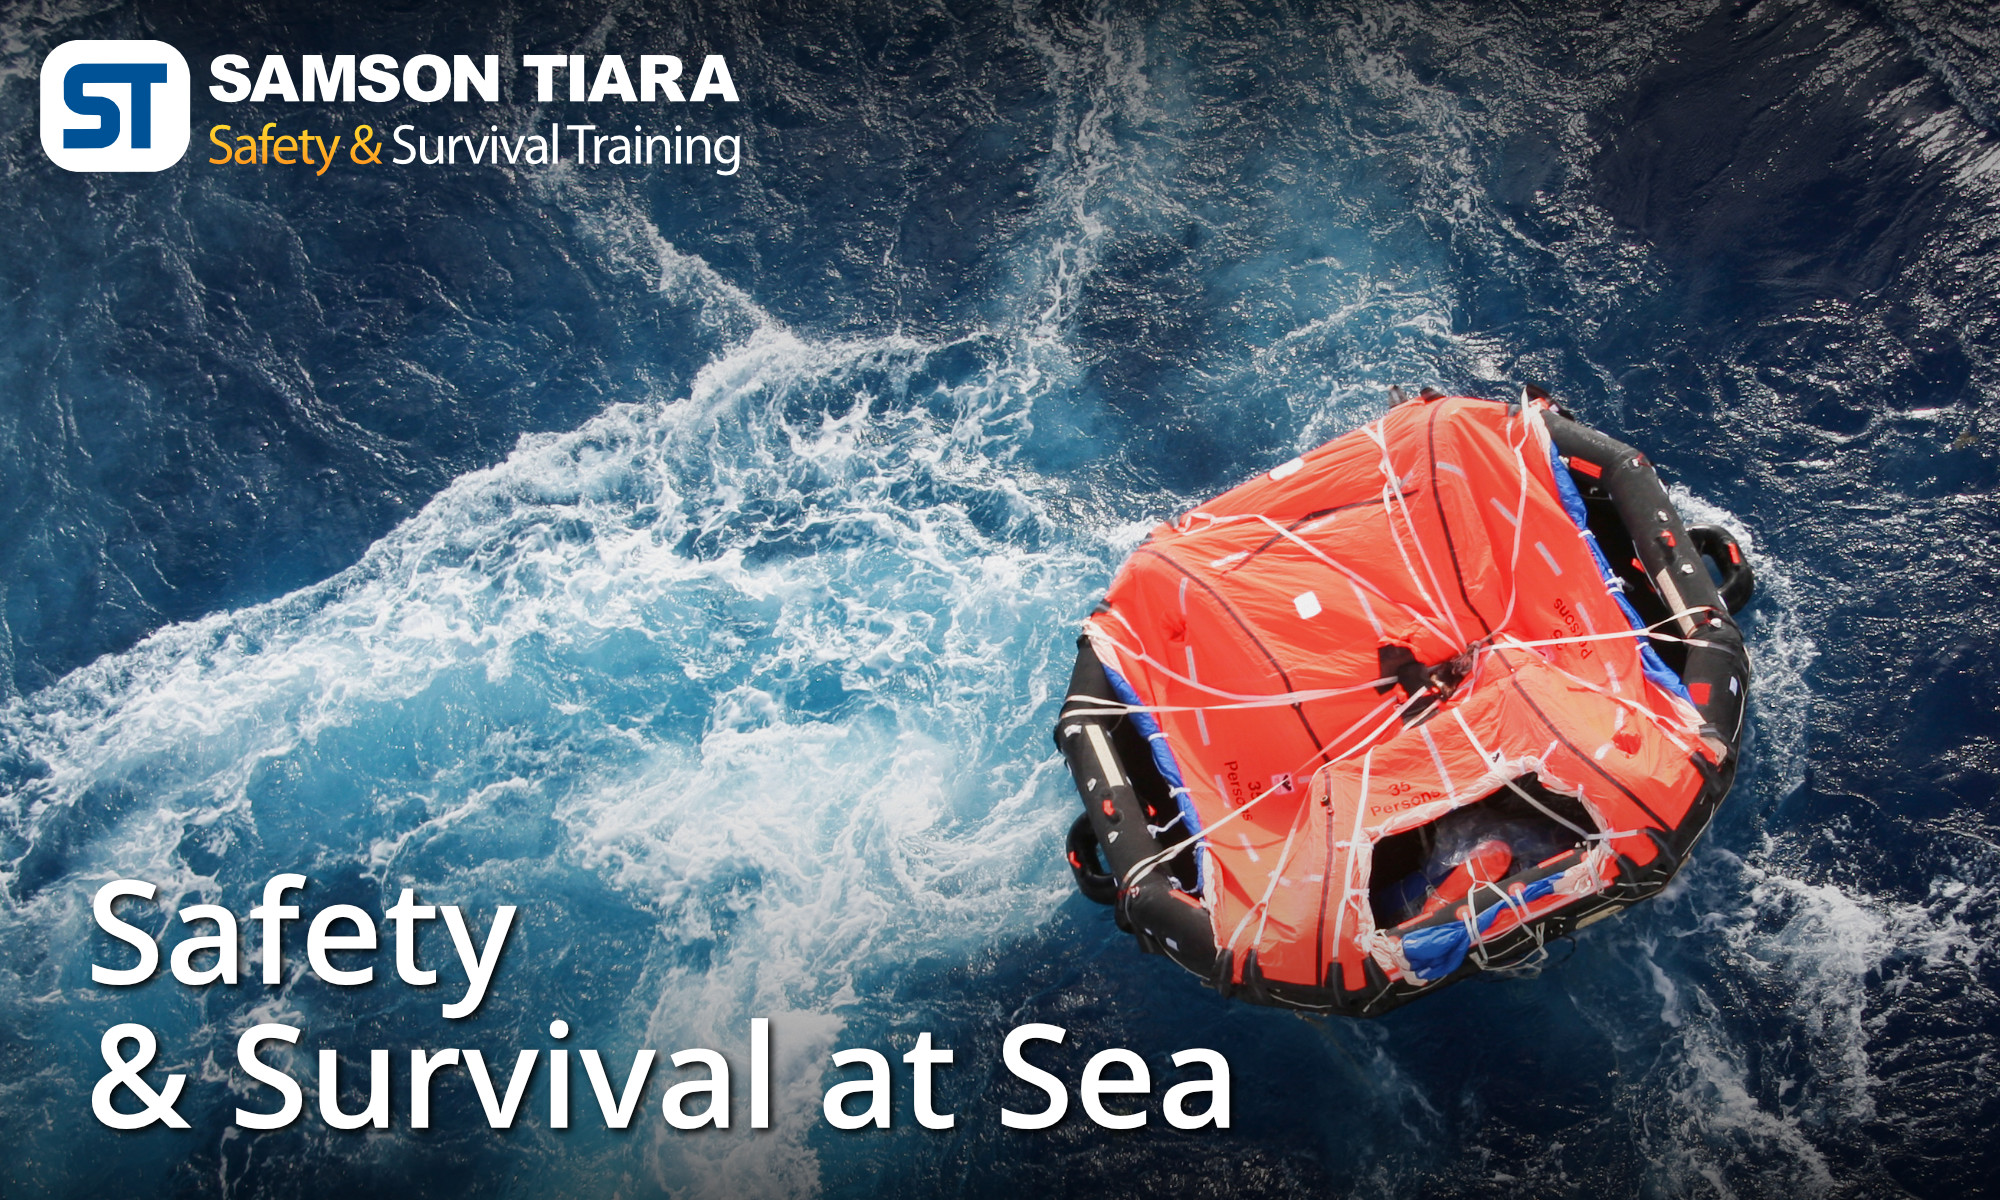 Safety and Survival at Sea